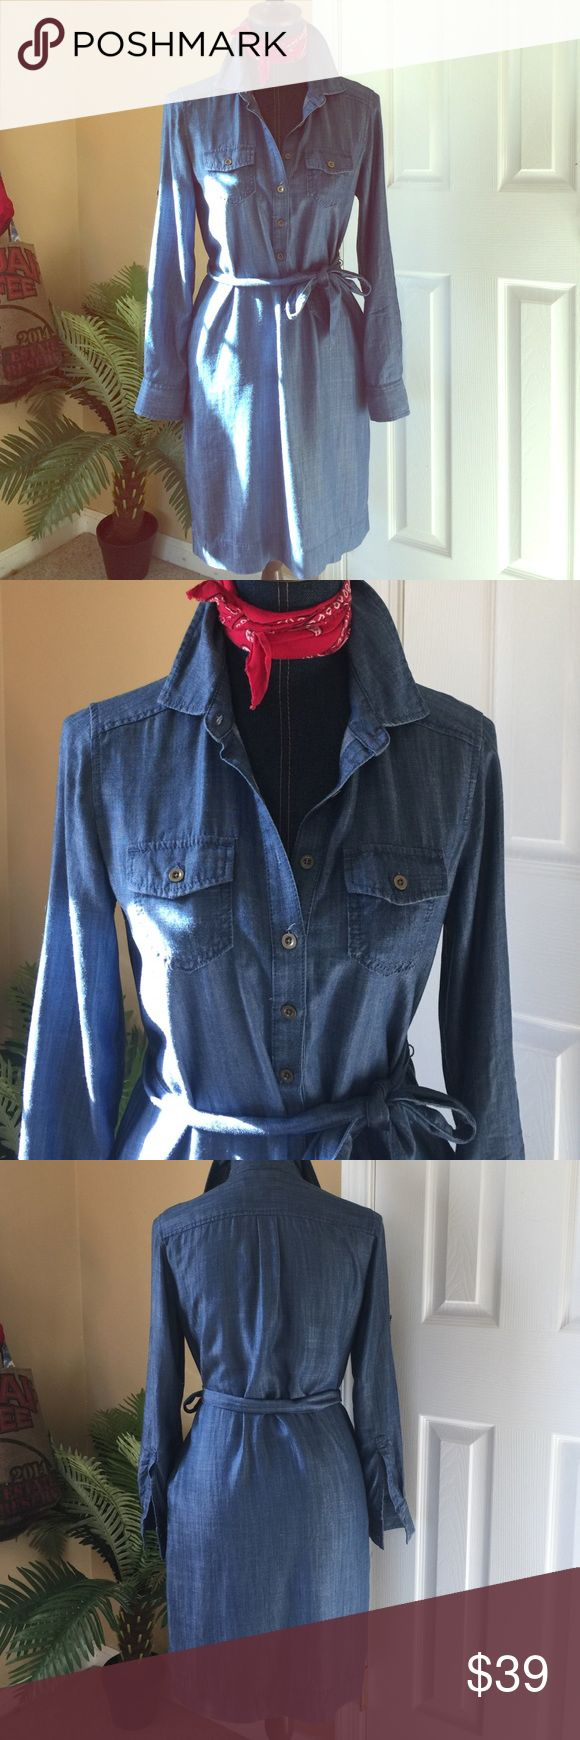 Banana Republic Denim Shirt Dress 💯 Lyocell Classic shirt dress style with belt. It is 100% lyocell fabric, belted and has 2 side pockets.  No stretch or give so it holds its shape nicely. Size 2 but could fit a 4 also. Banana Republic Dresses